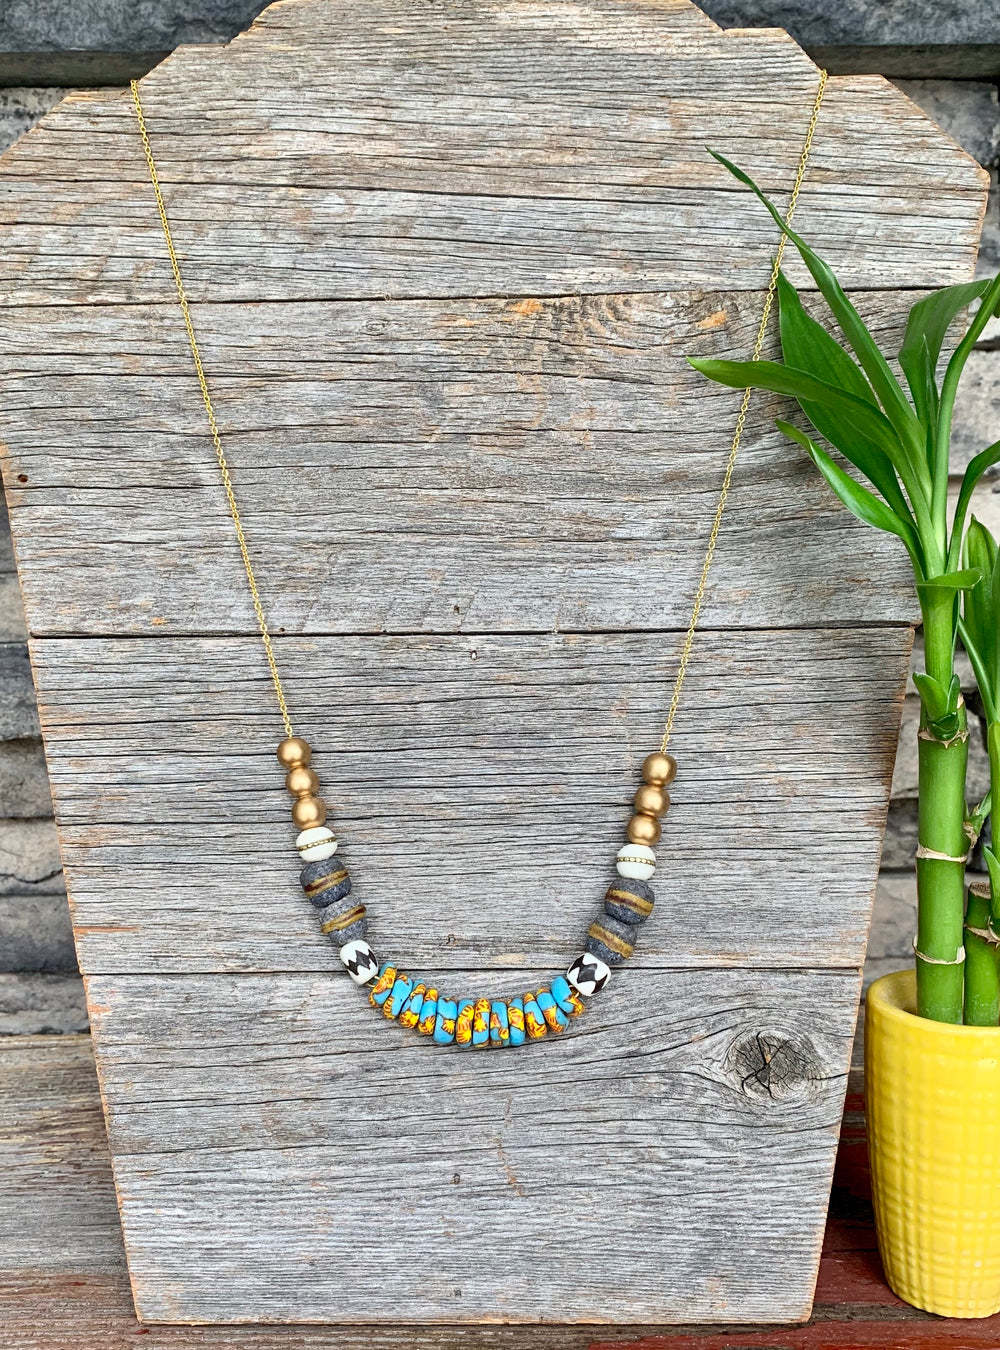 Breezy Beaded Necklace by DuHope from Rwanda